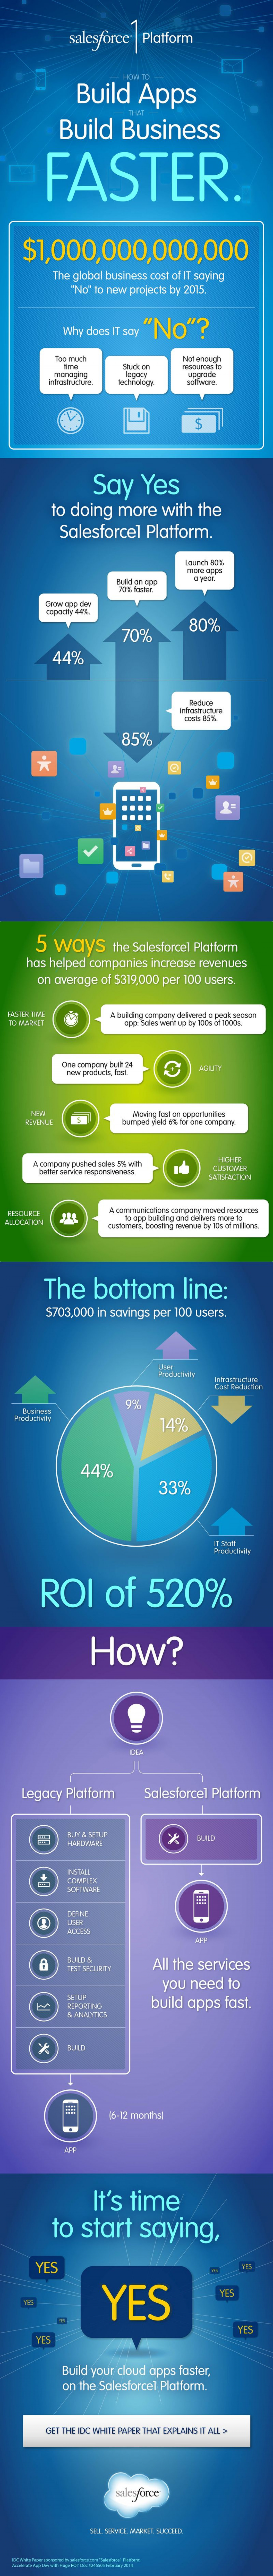 How To Build Apps That Build Business Faster Infographic